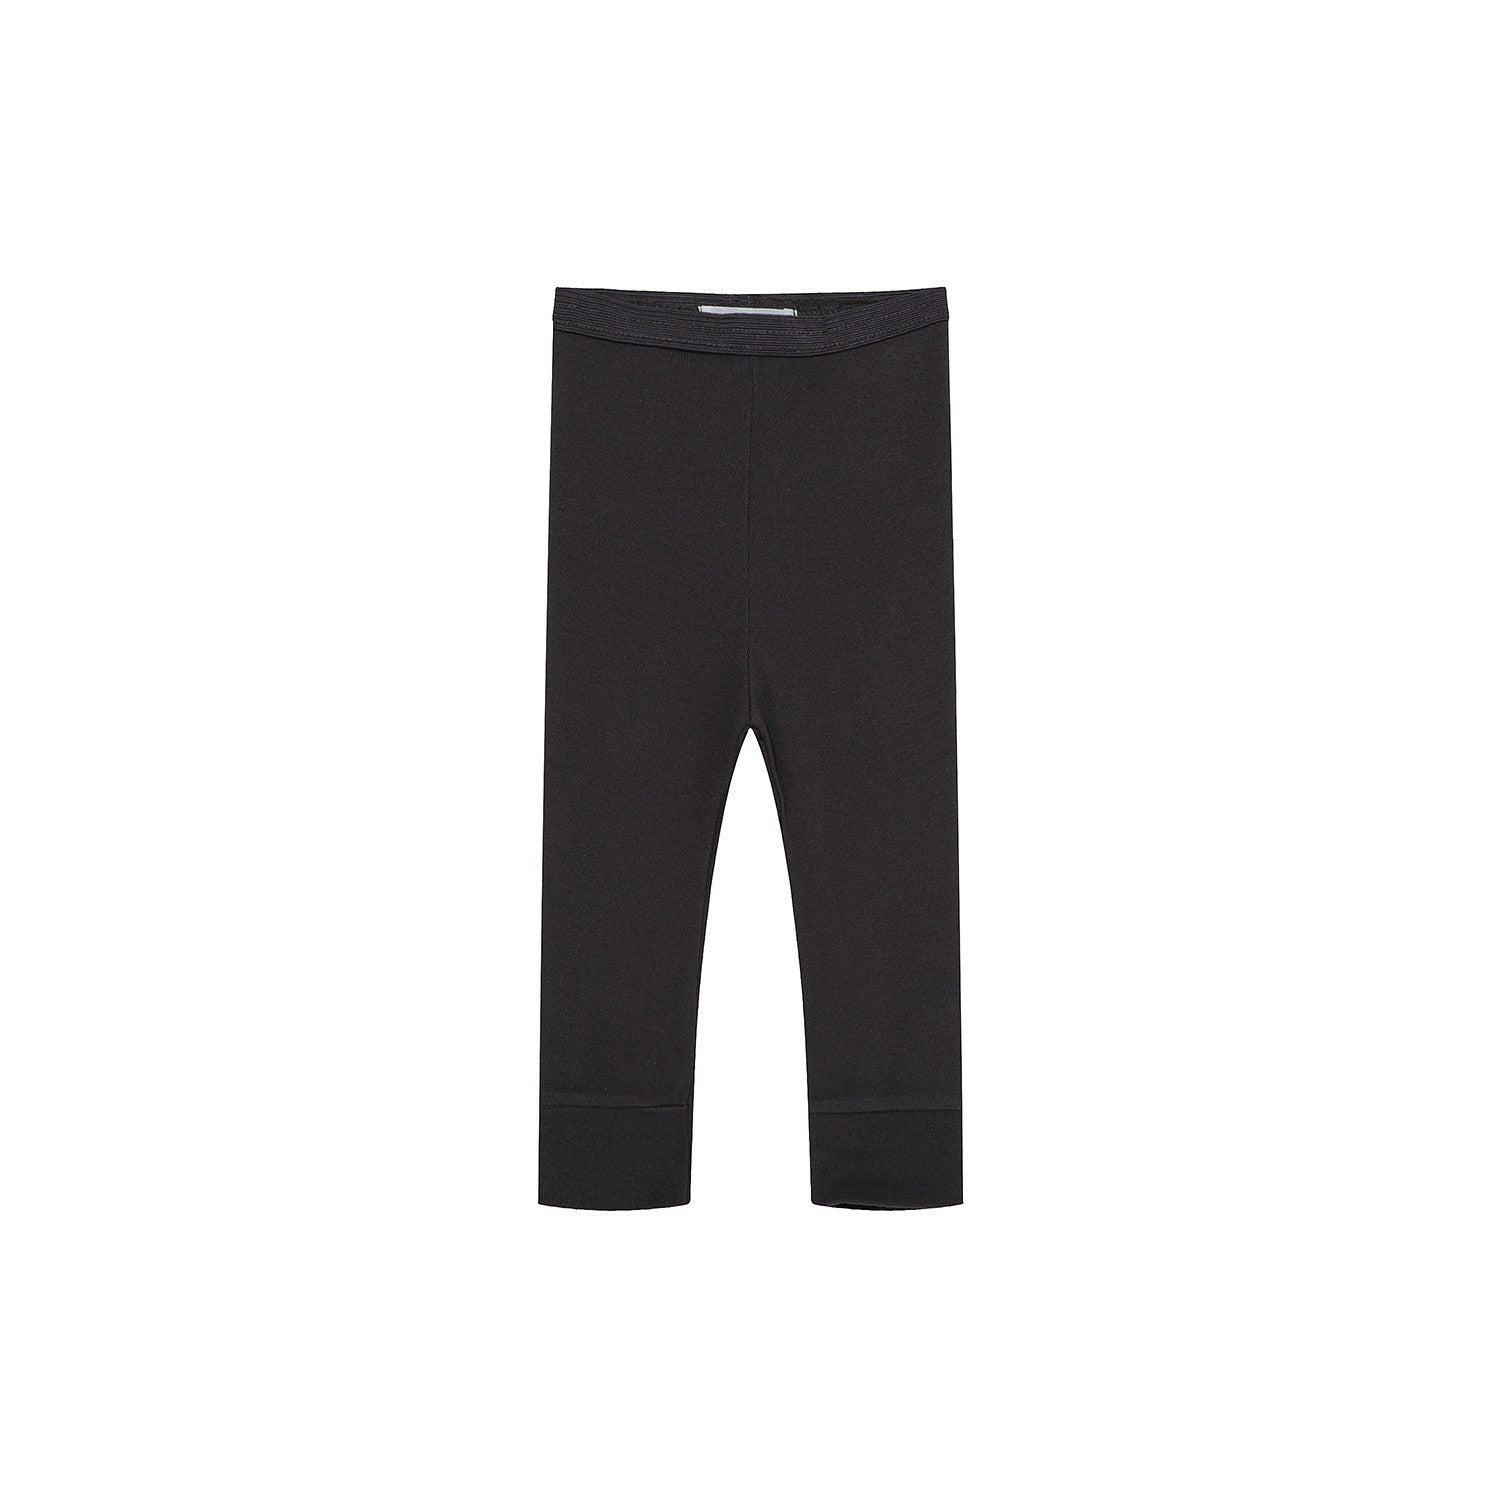 Bene Bene Charcoal Band Leggings